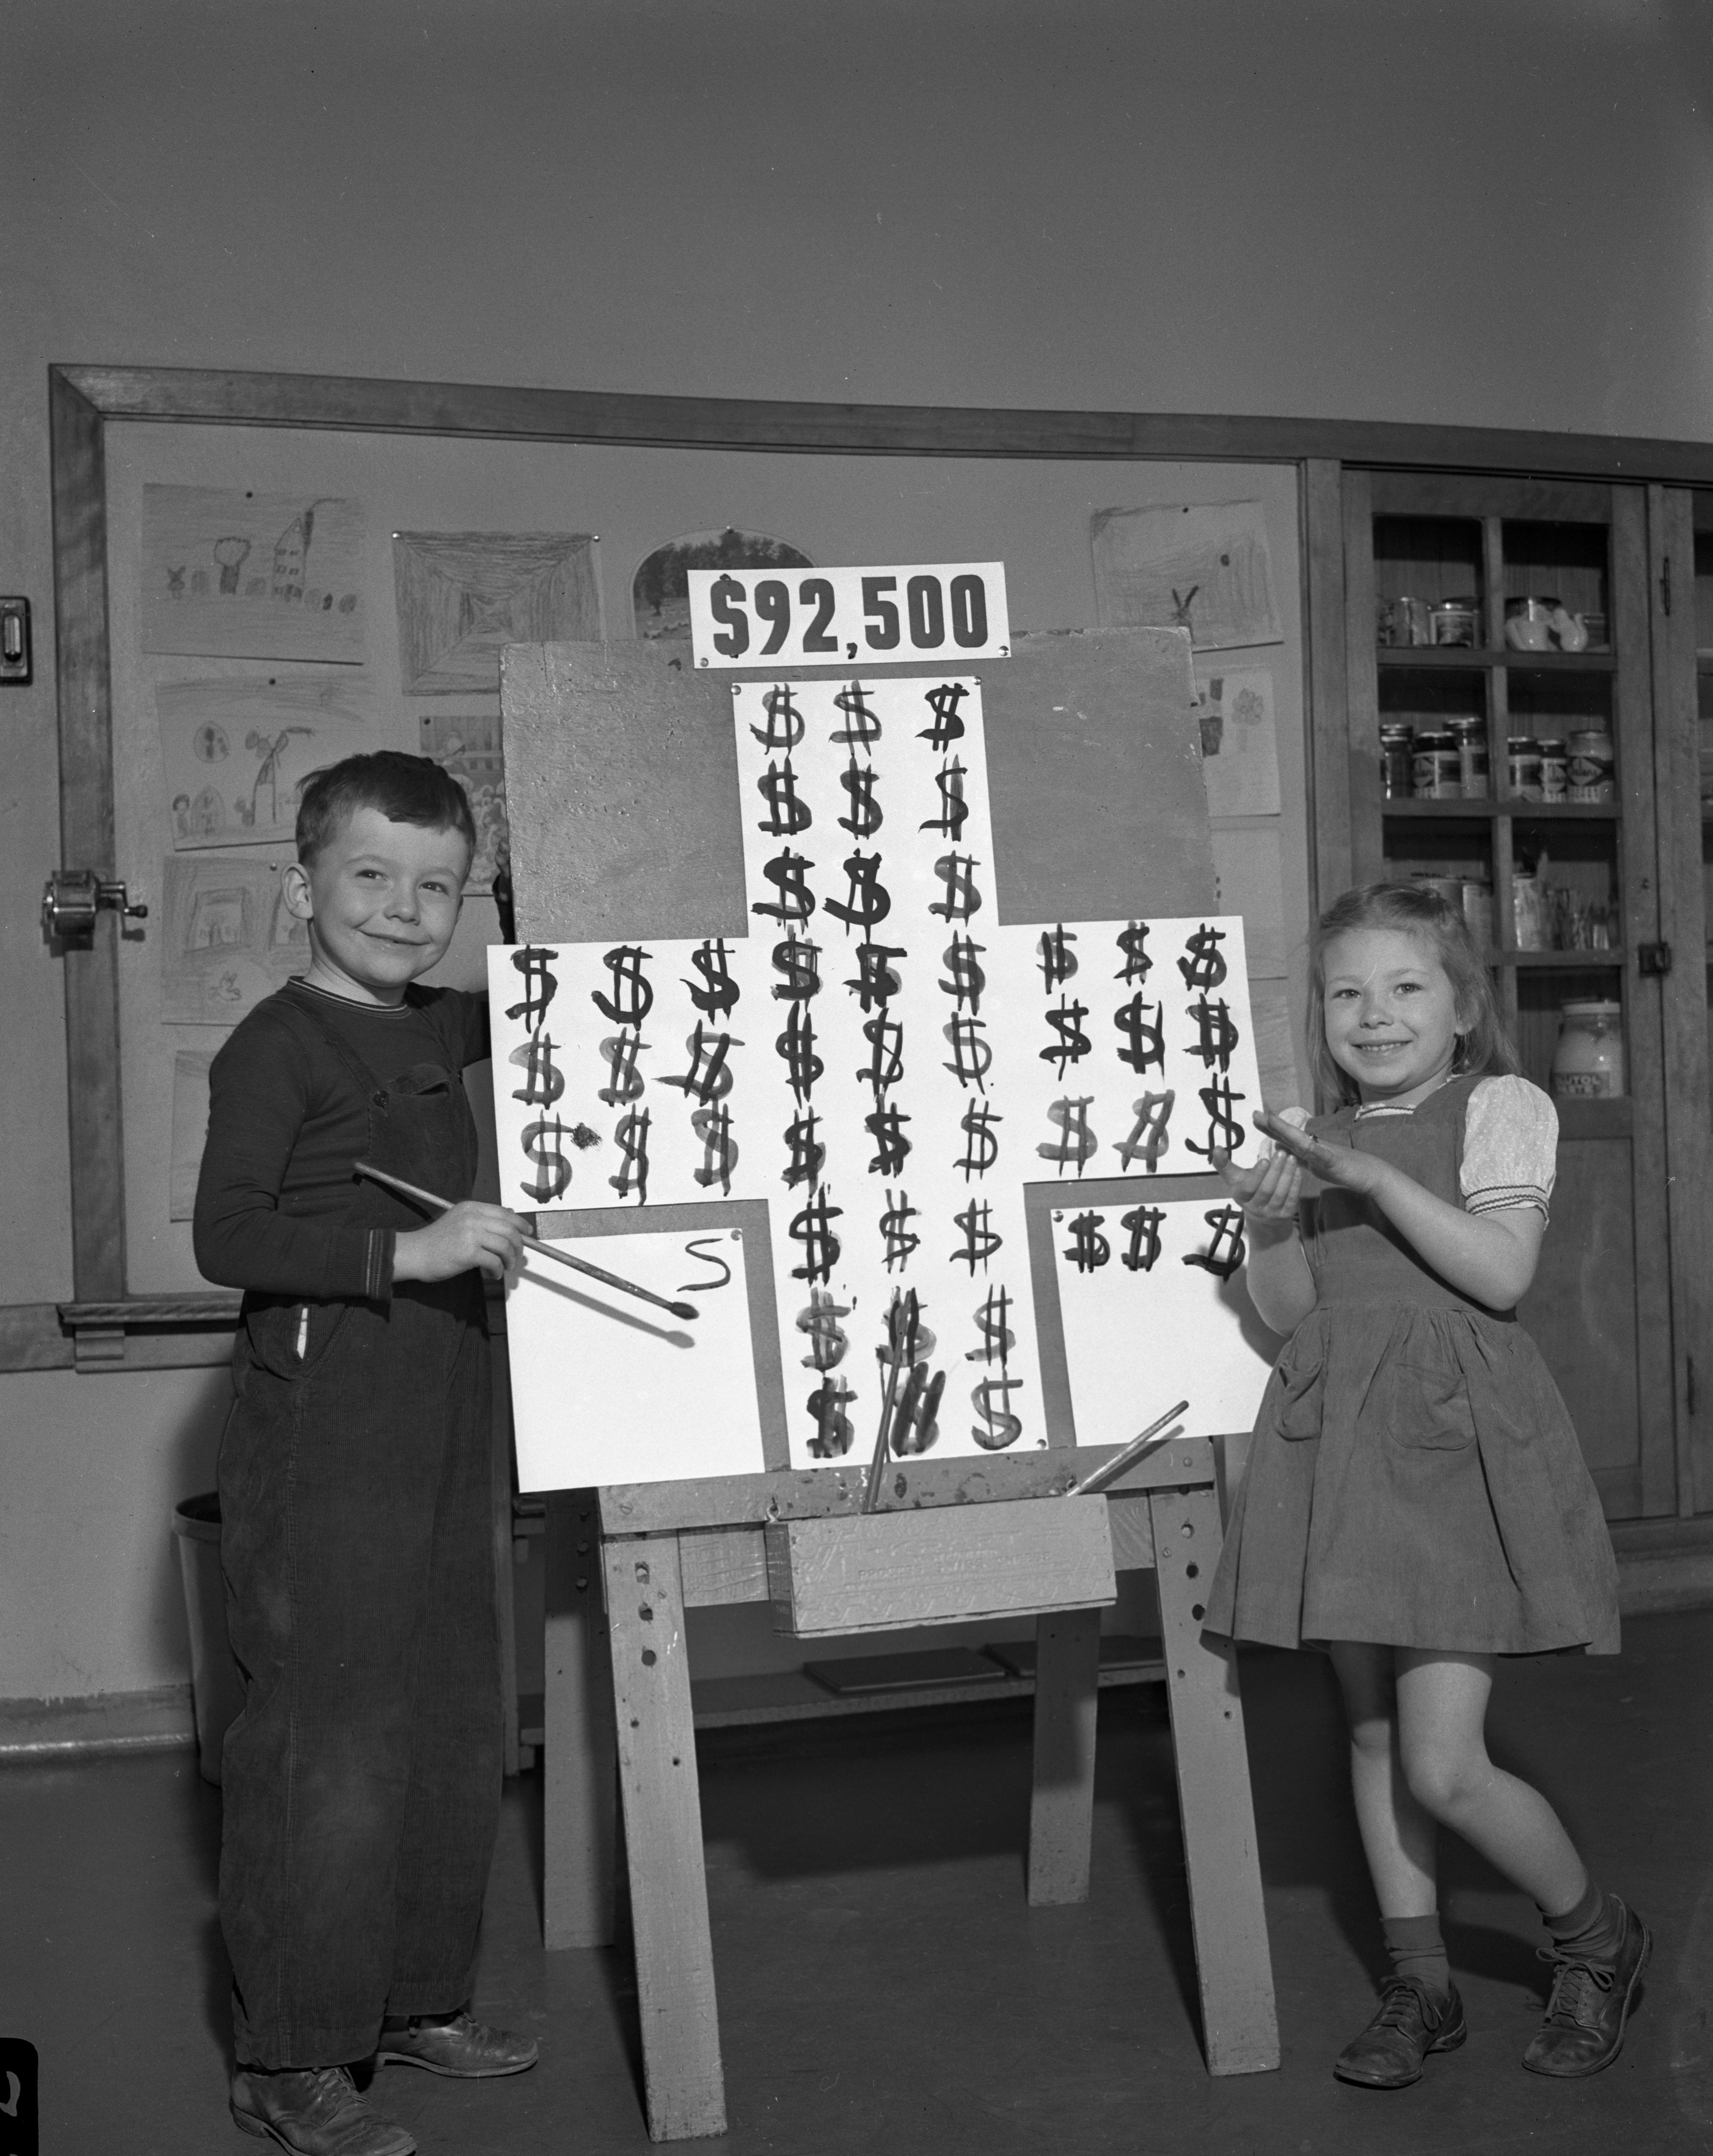 Campbell Smith (representing Ann Arbor) and Saundra Wares (representing the county outside Ann Arbor) Show the Red Cross Drive's Daily Score, March 28, 1944 image